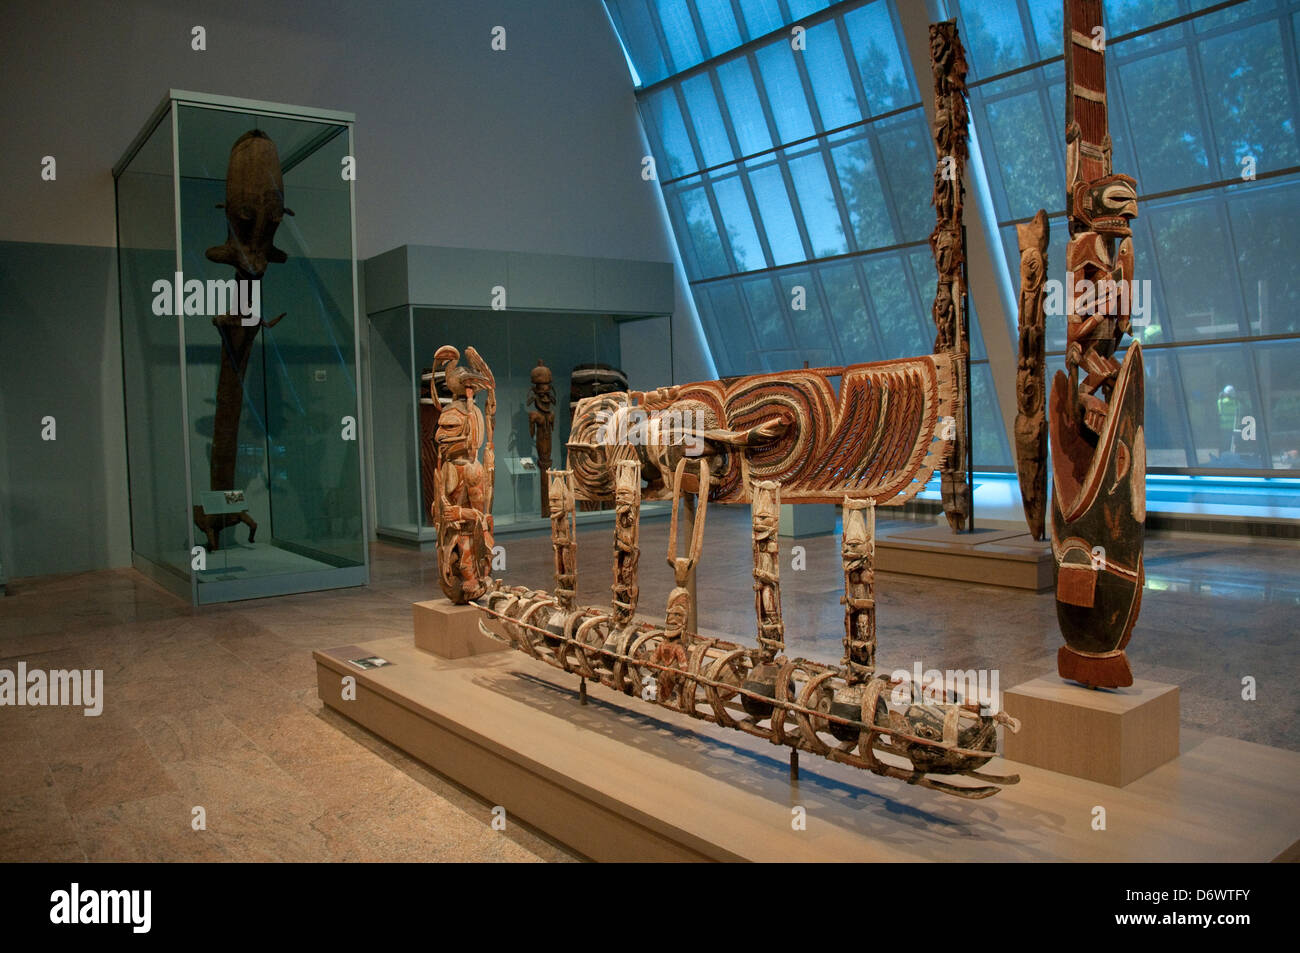 The arts of africa oceania and the americas gallery in for Museum of art metropolitan